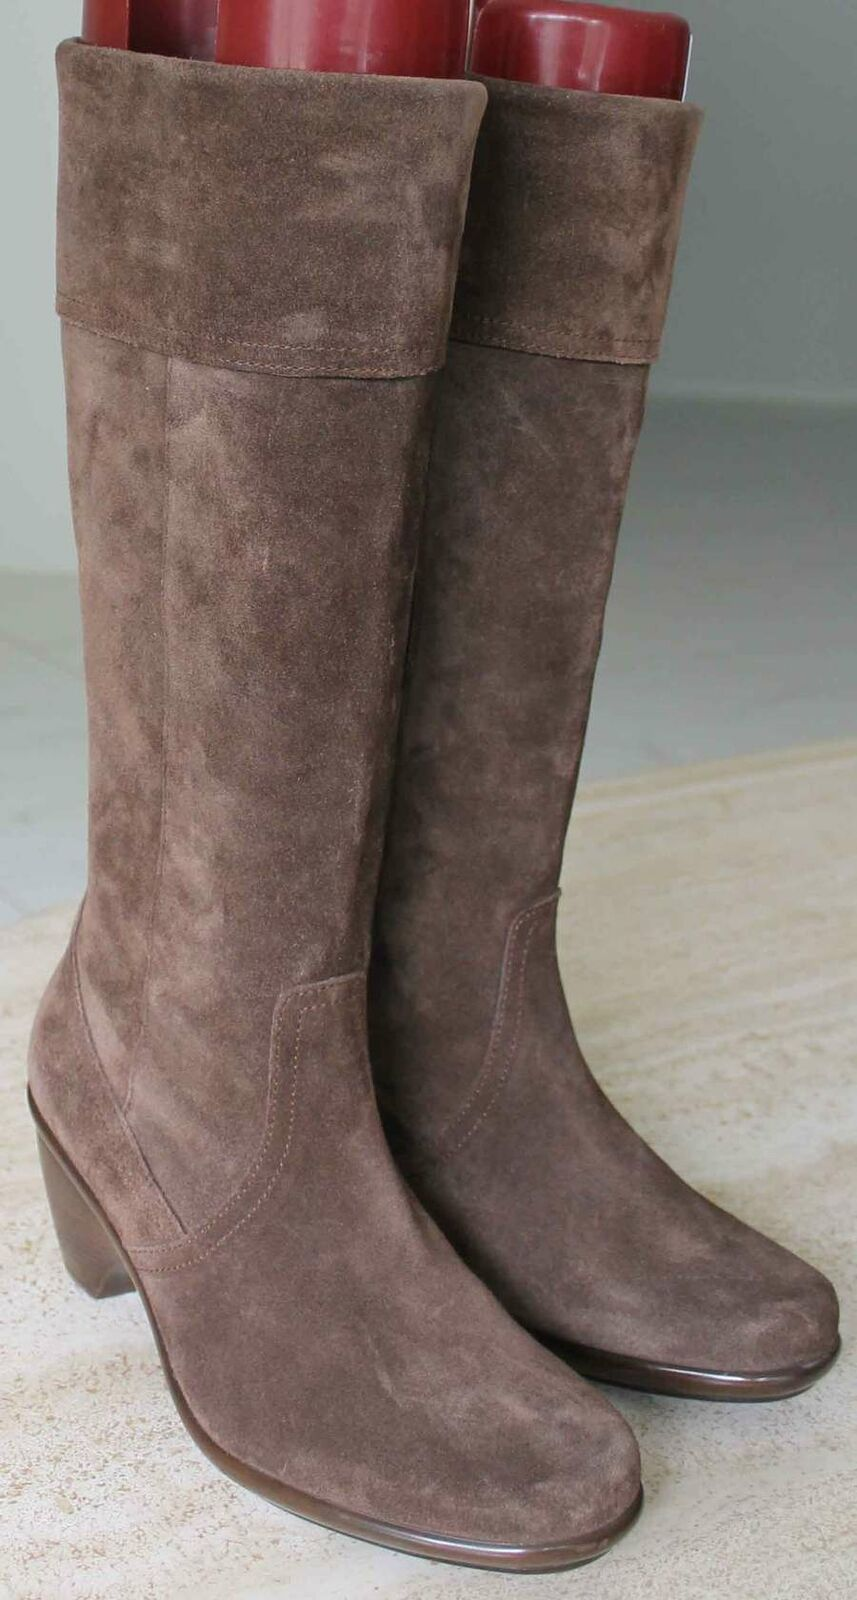 Dansko Tall Suede Leather Boots Womens 37 37 37   7 MED   New d592f0